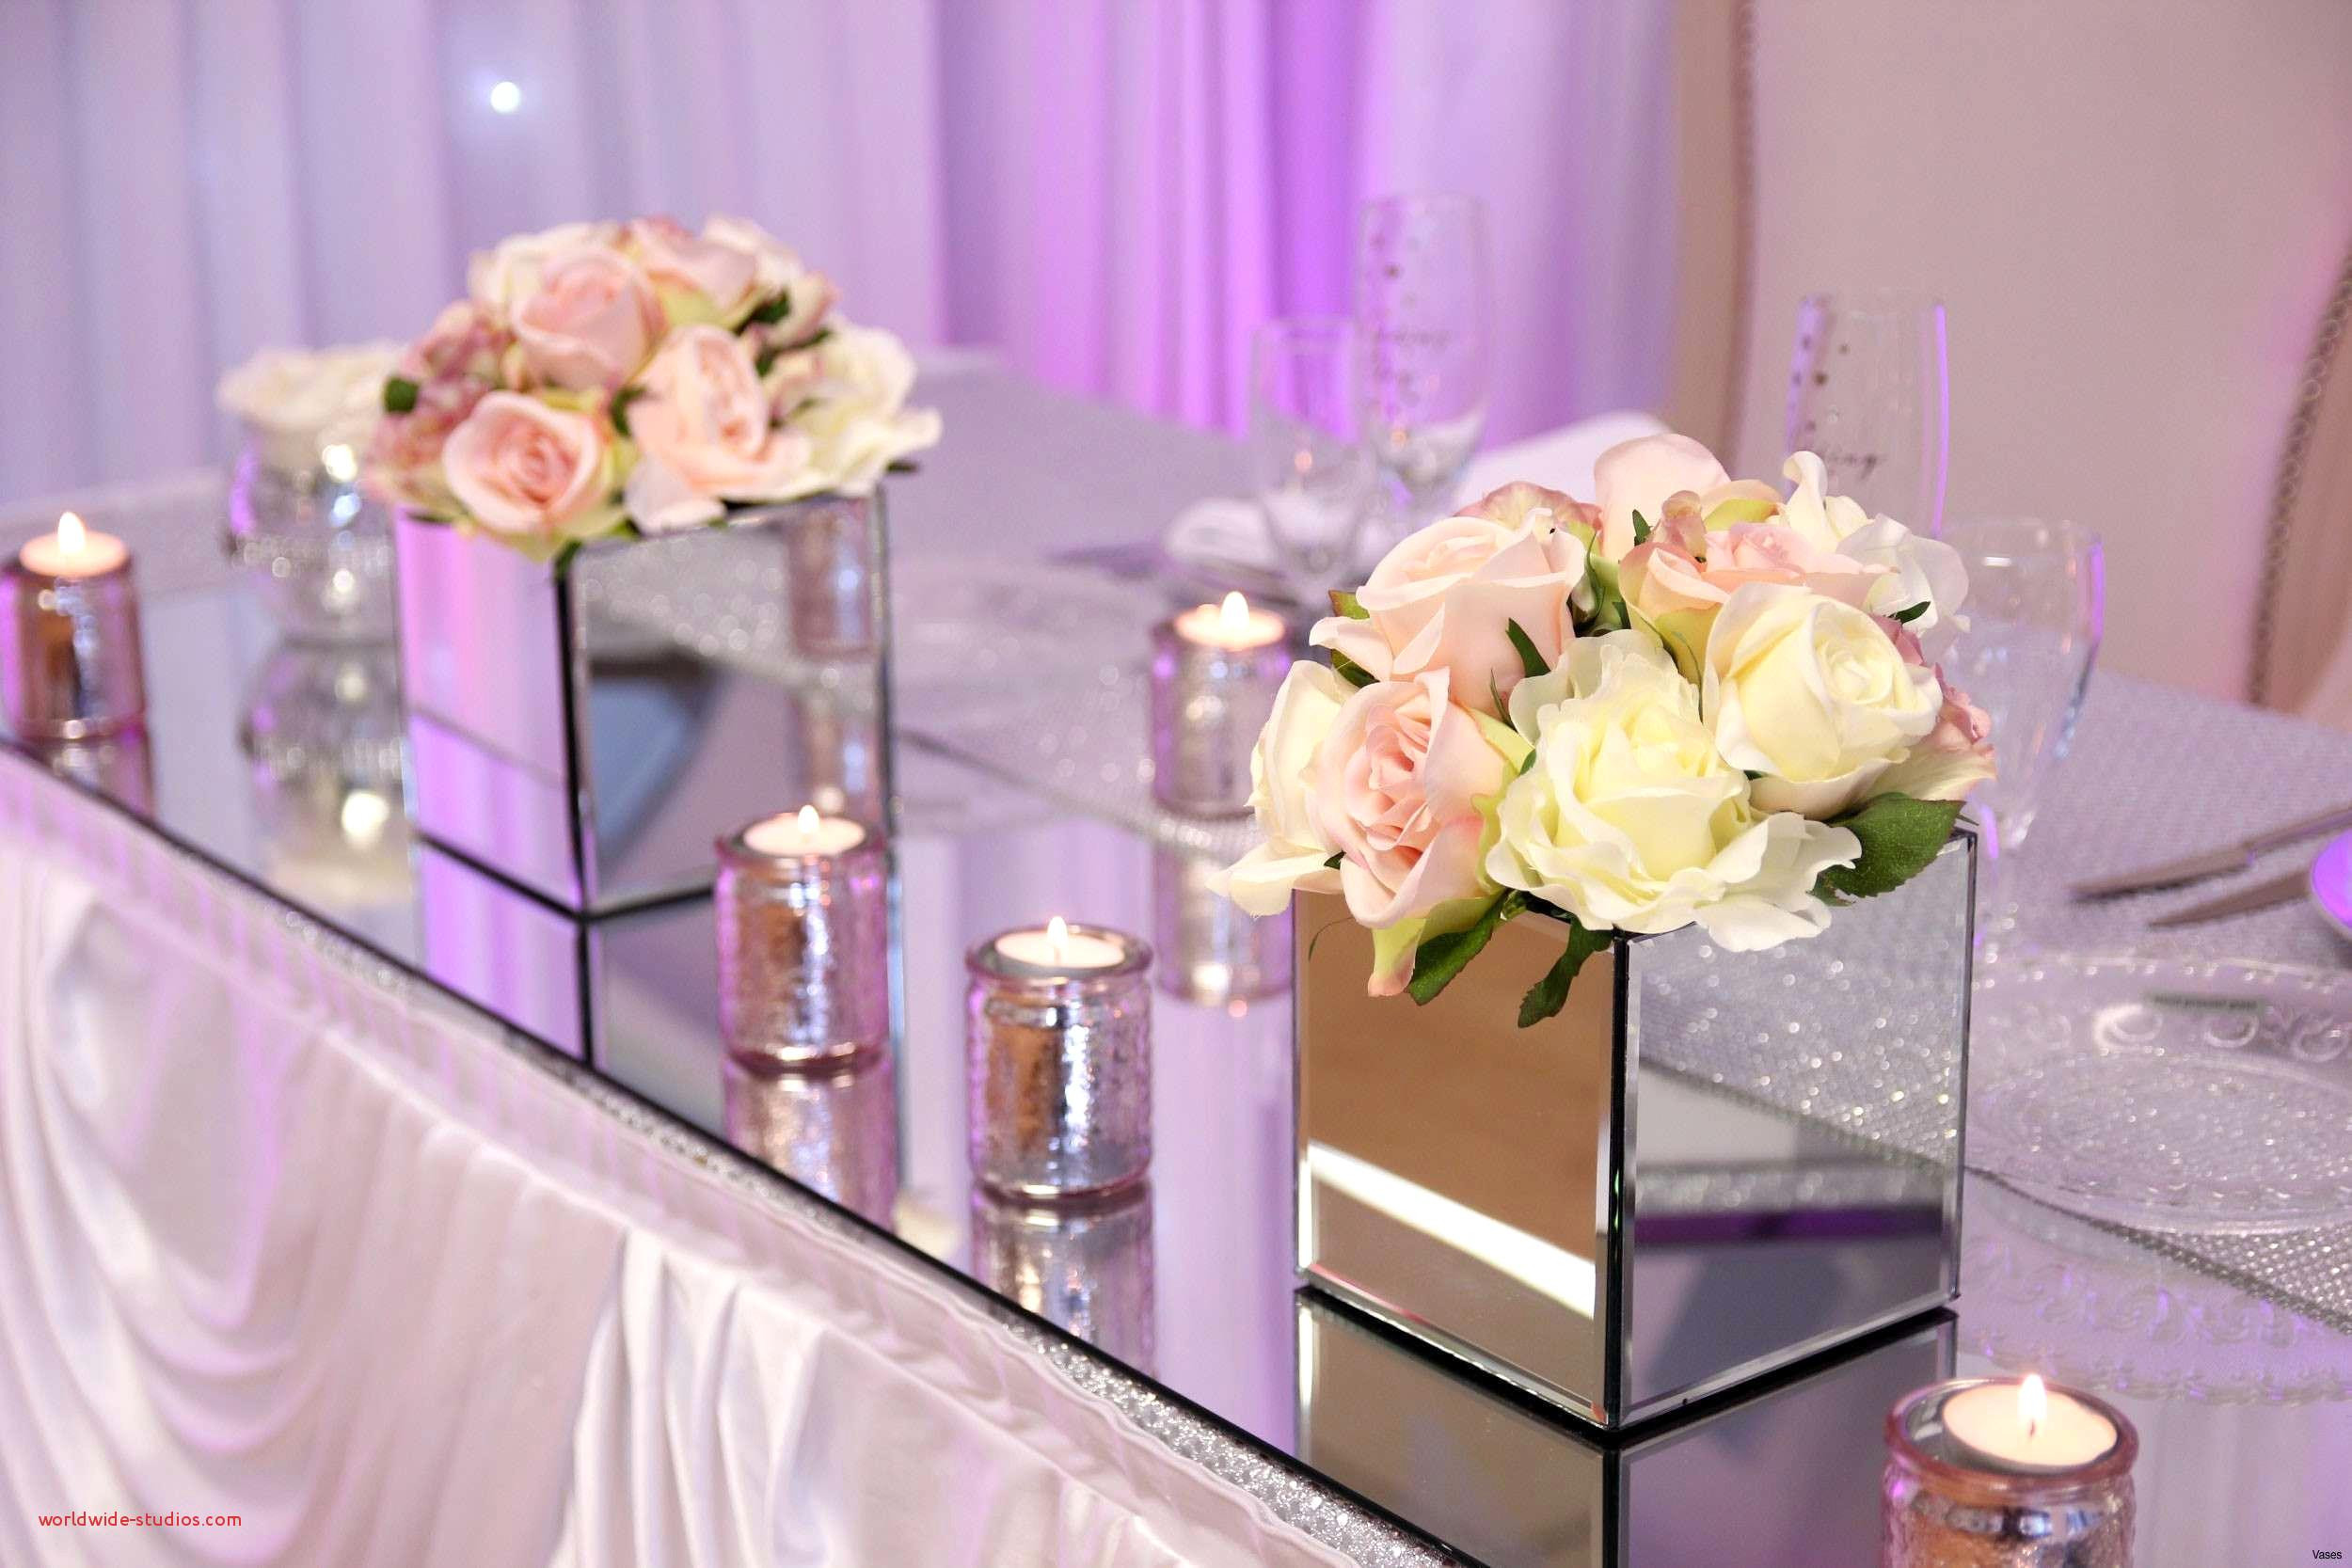 shell vase filler of the diy wedding ideas for a tight budget for 2018 economyinnbeebe com intended for mirrored square vase 3h vases mirror table decorationi 0d weddings inspiration of outdoor wedding ideas on